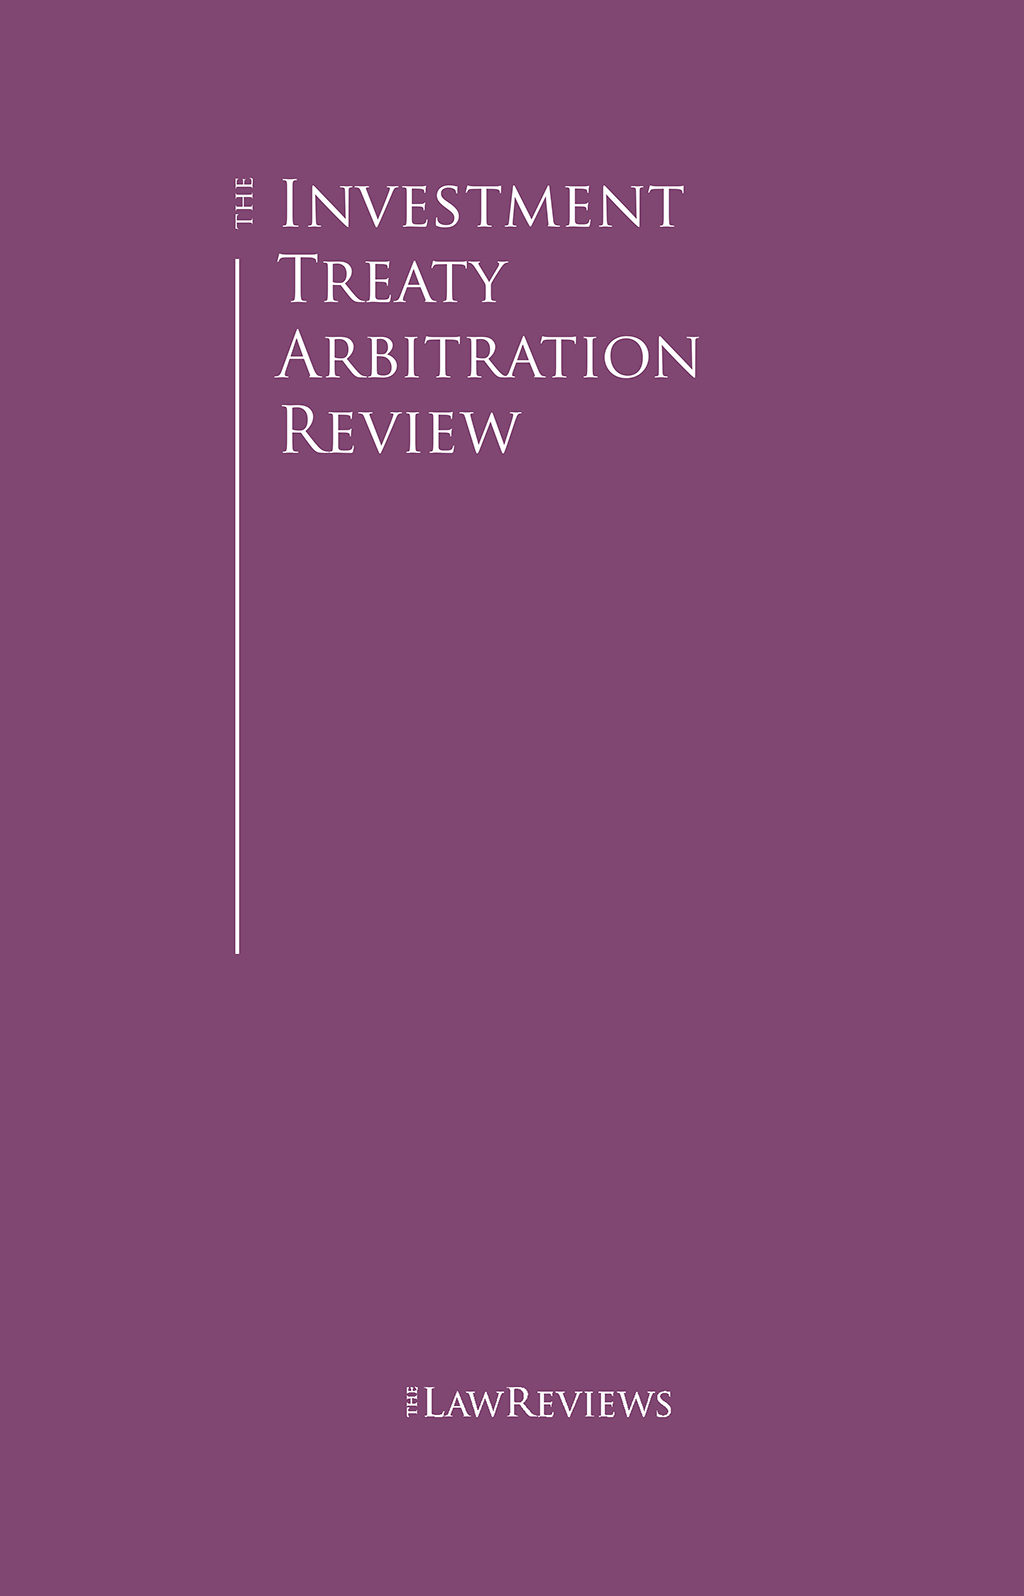 The Investment Treaty Arbitration Review